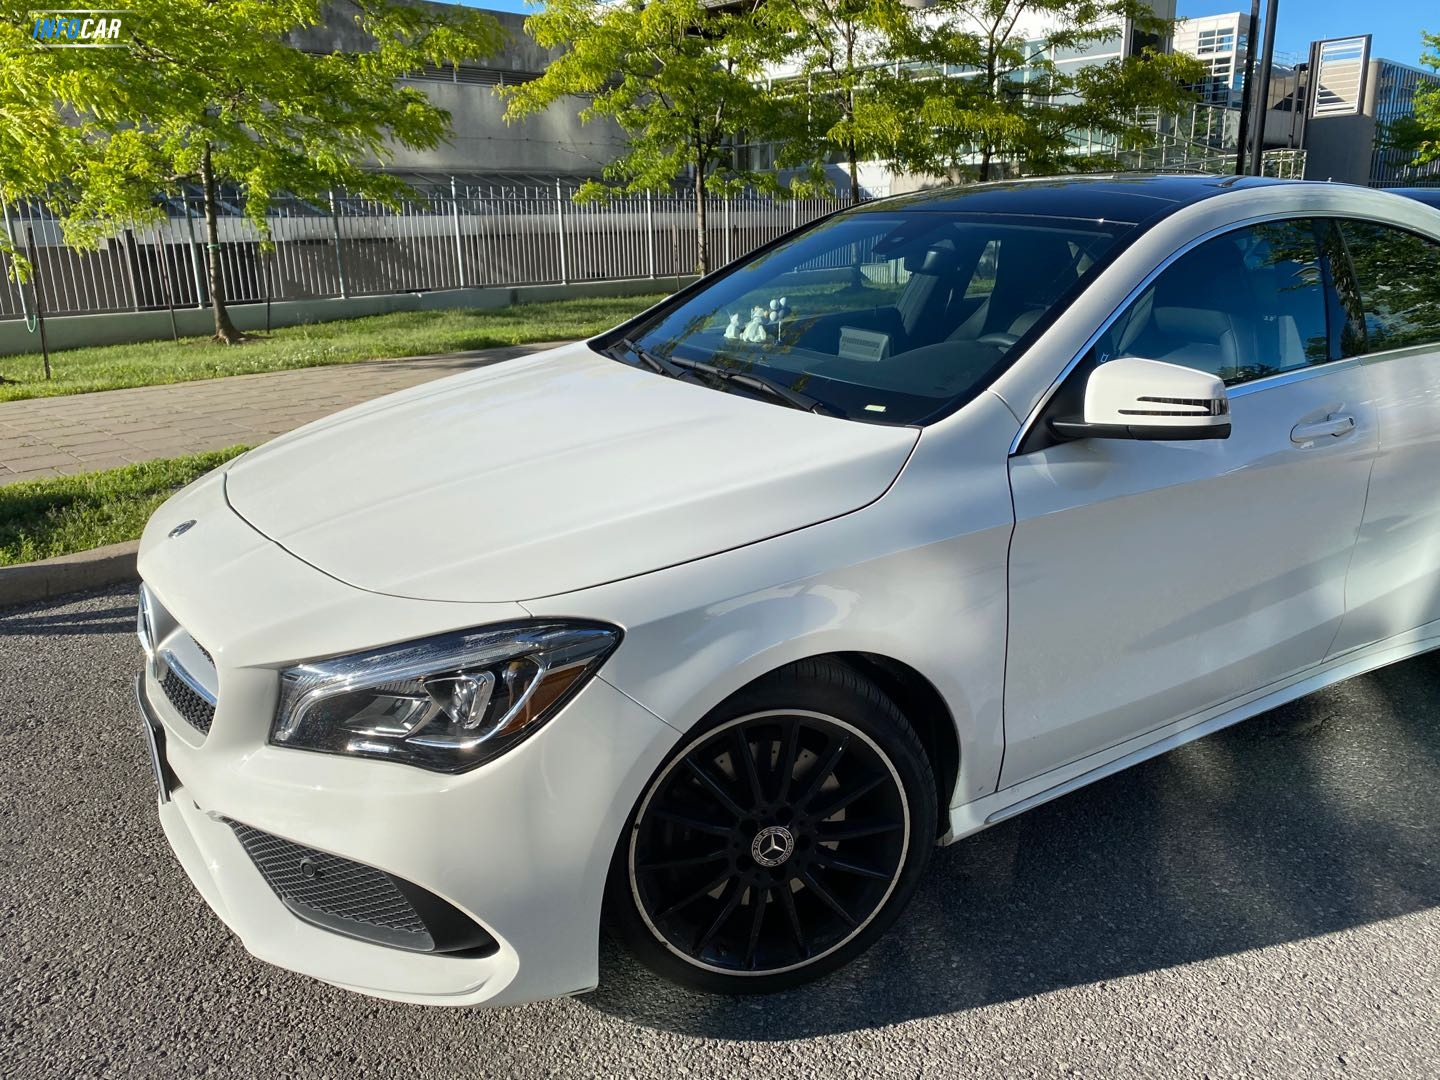 2018 Mercedes-Benz CLA-Class CLA250 - INFOCAR - Toronto's Most Comprehensive New and Used Auto Trading Platform